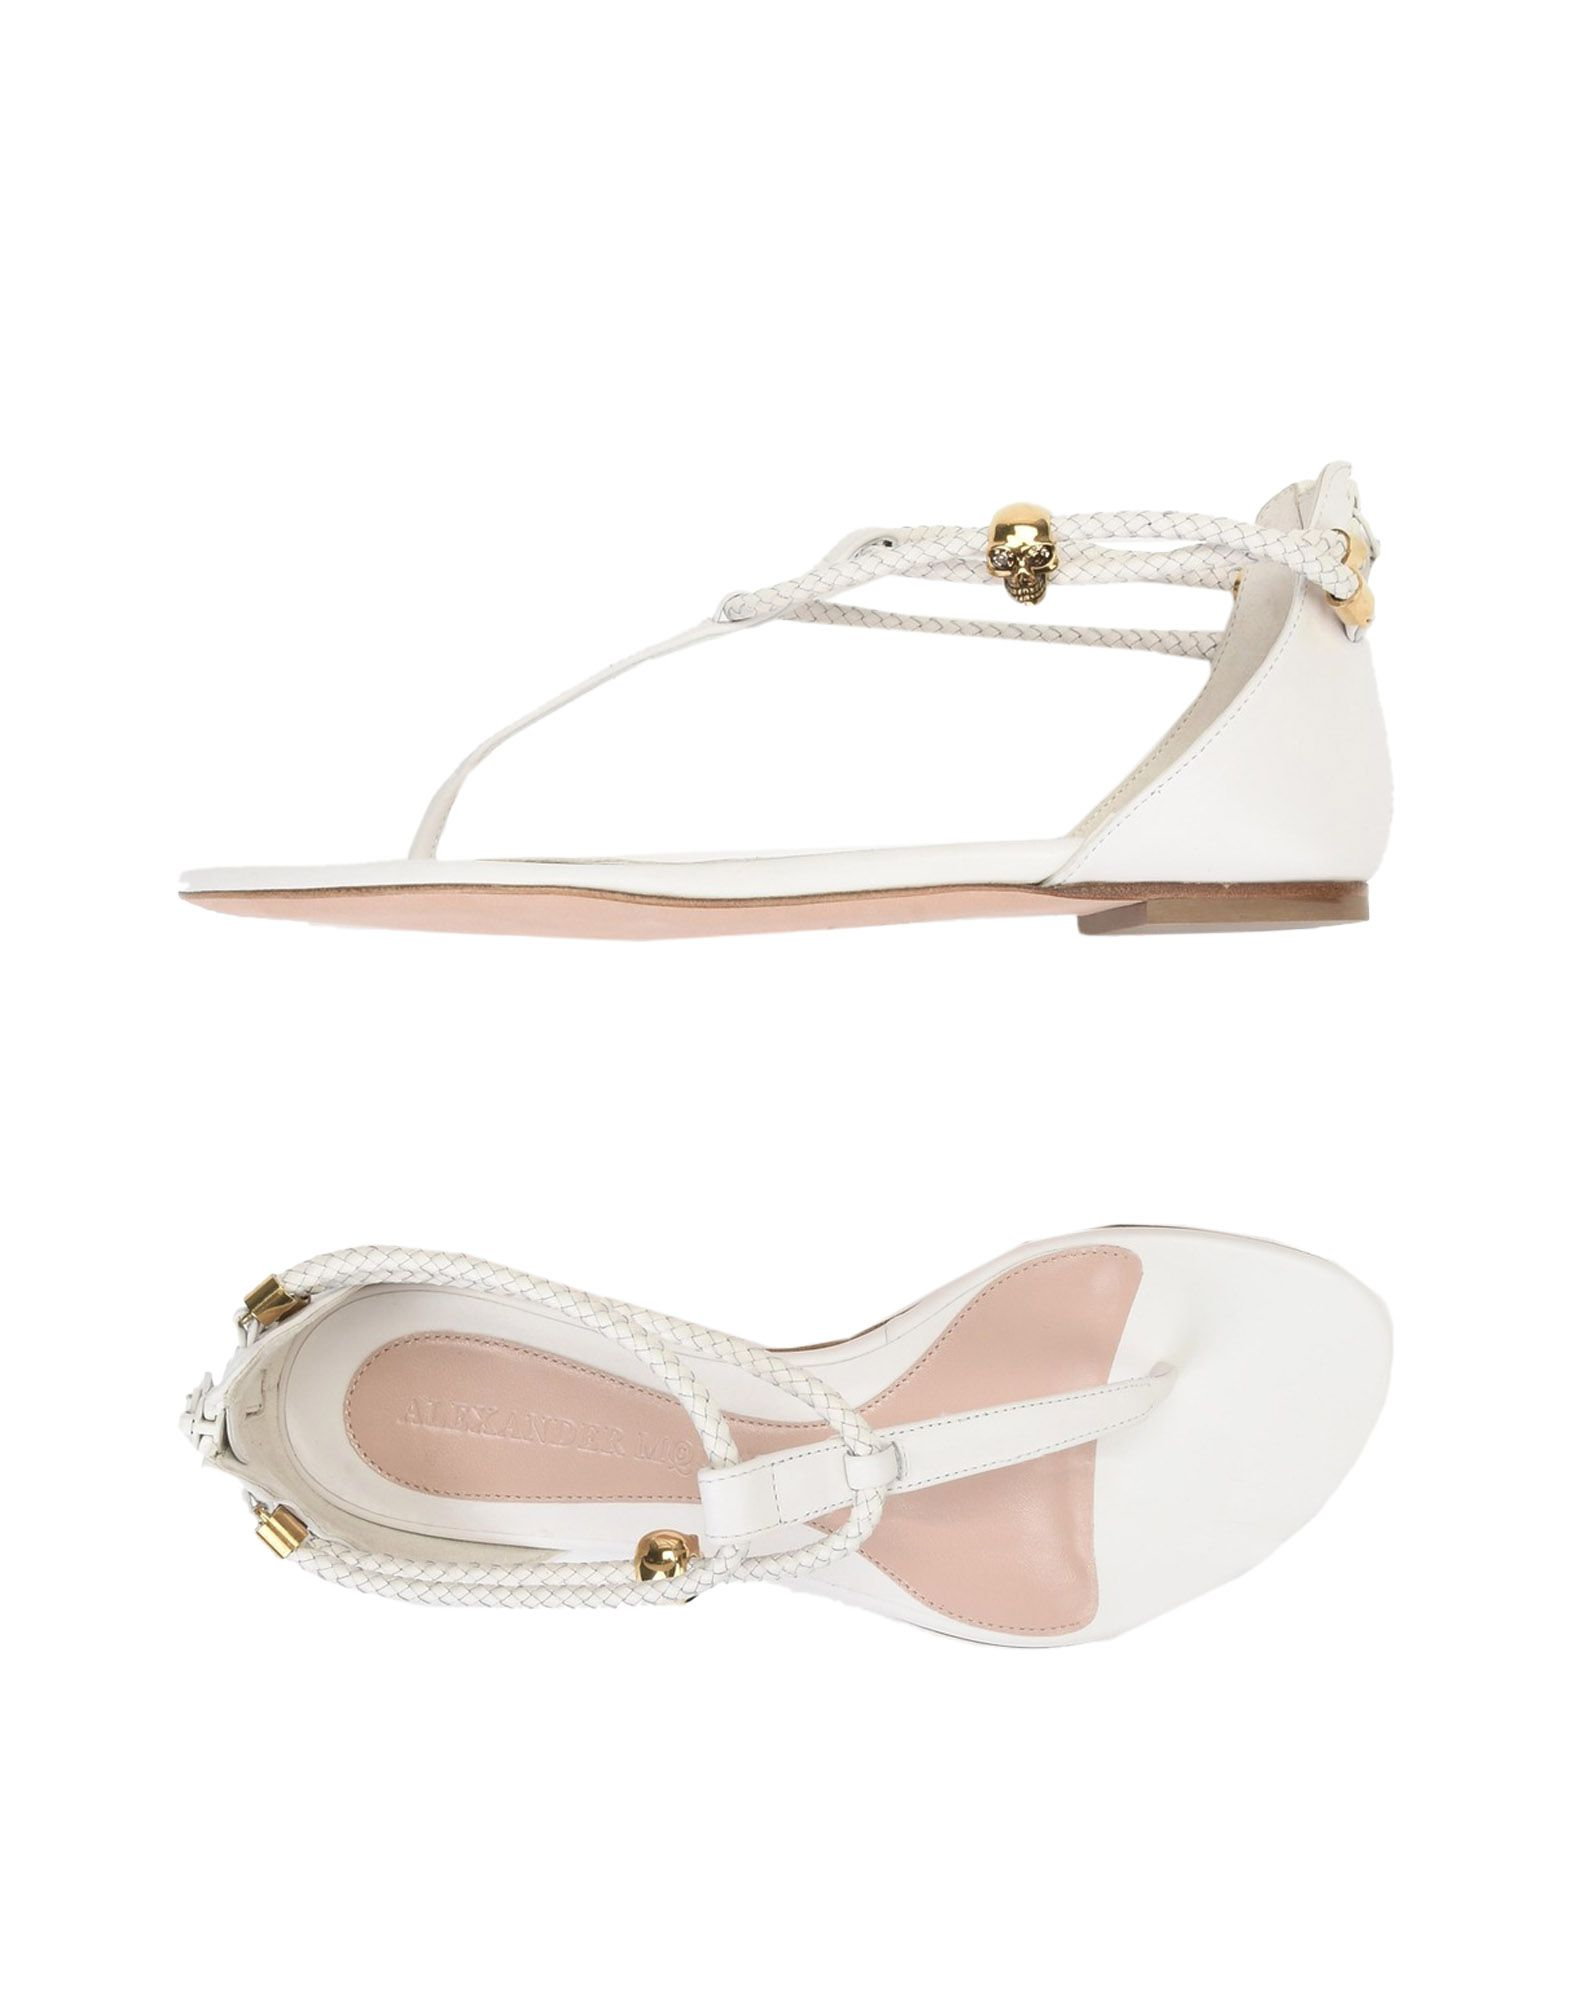 ALEXANDER MCQUEEN Toe strap sandals. Rhinestones Metal Applications Solid color Zip Round toeline Flat Leather lining Leather sole Contains non-textile parts of animal origin. Calfskin